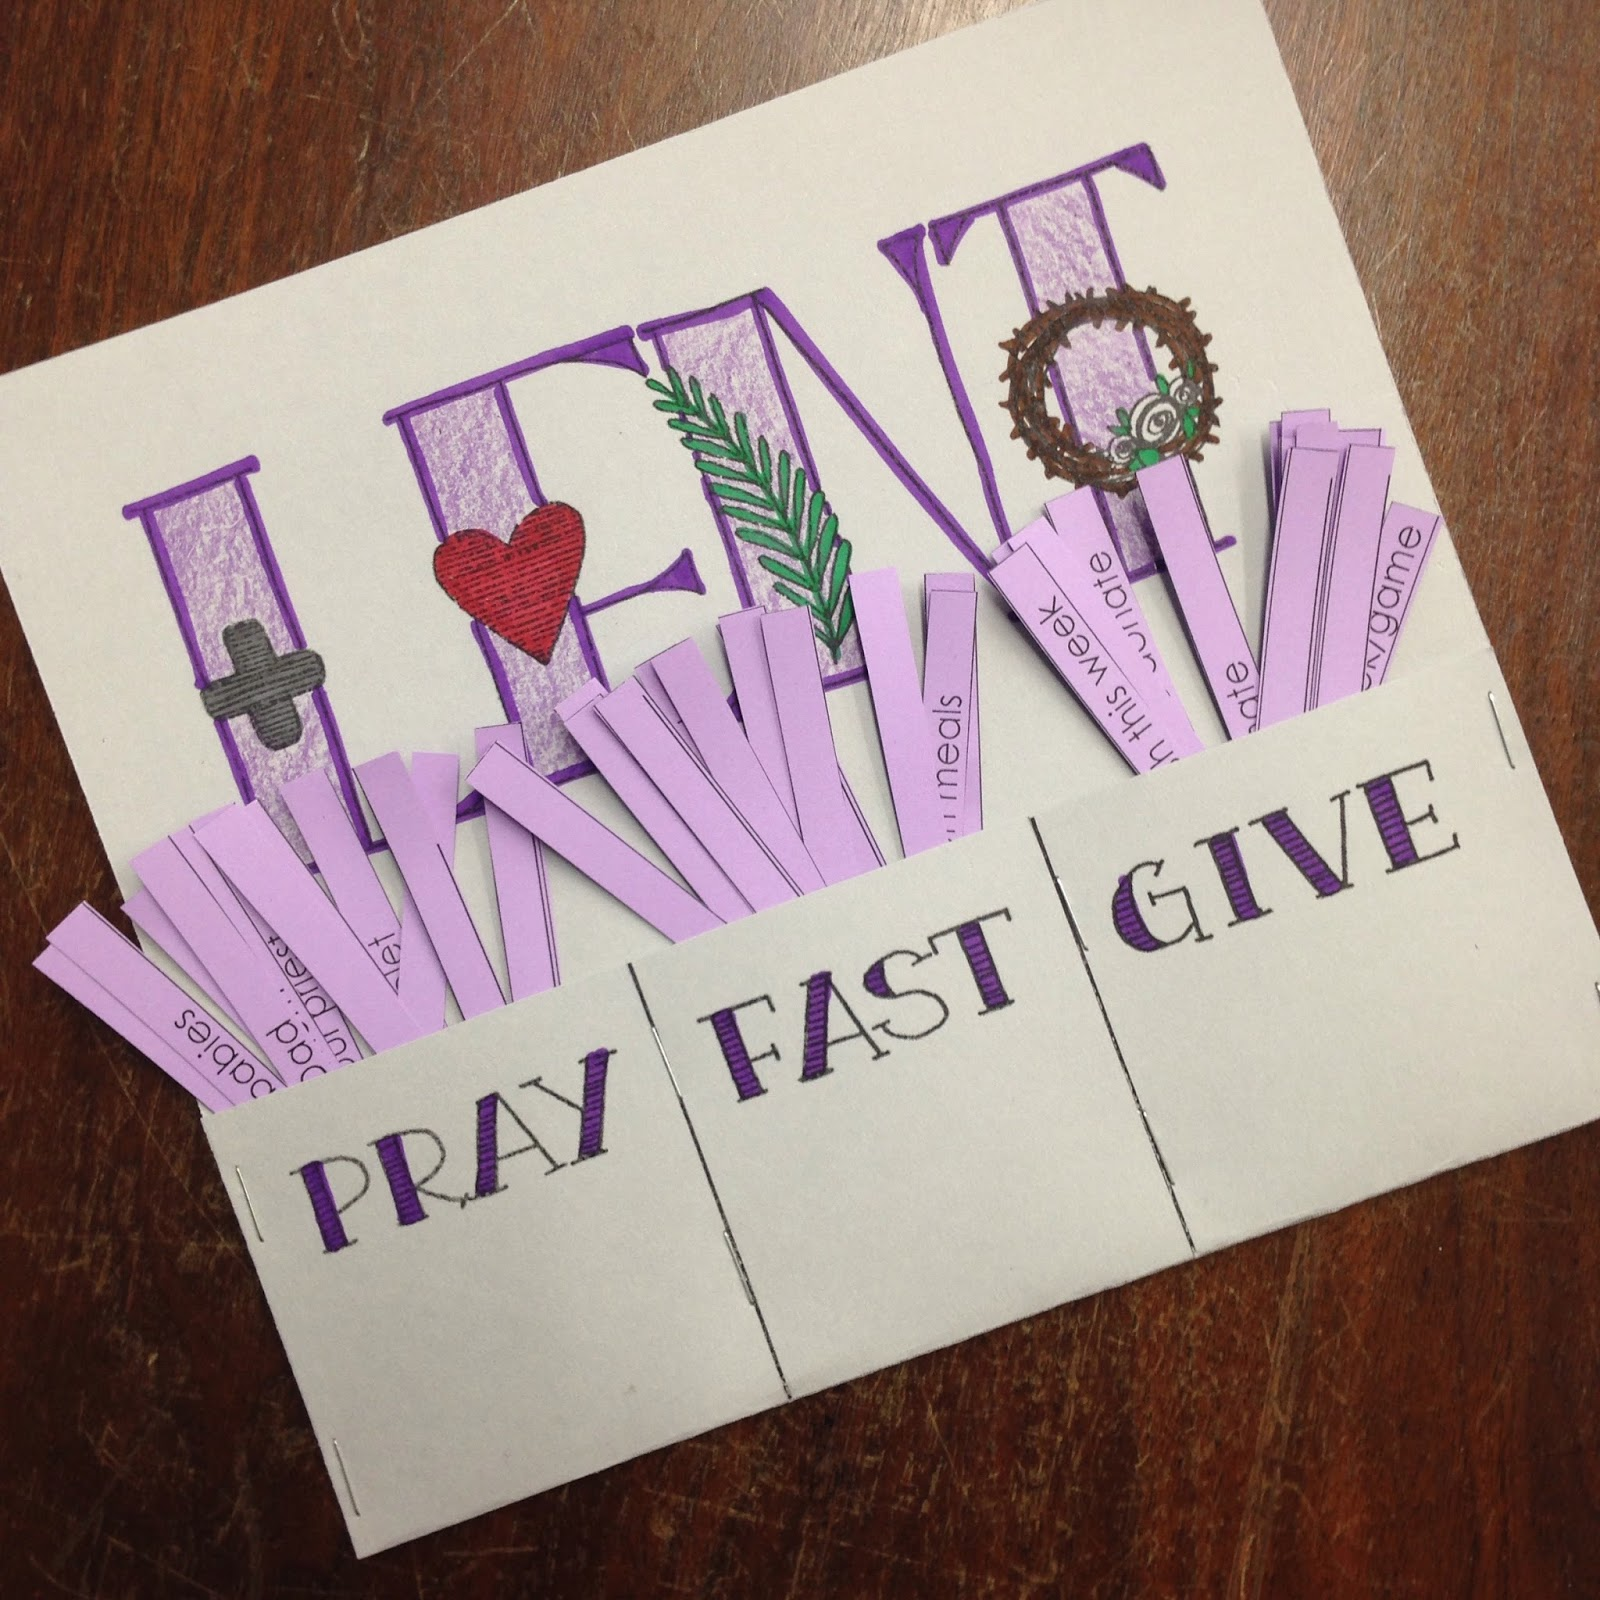 Hang up the pray fast give printable on the fridge or above a desk or on a chalkboard and have the kids draw the prayer and sacrifice they will offer